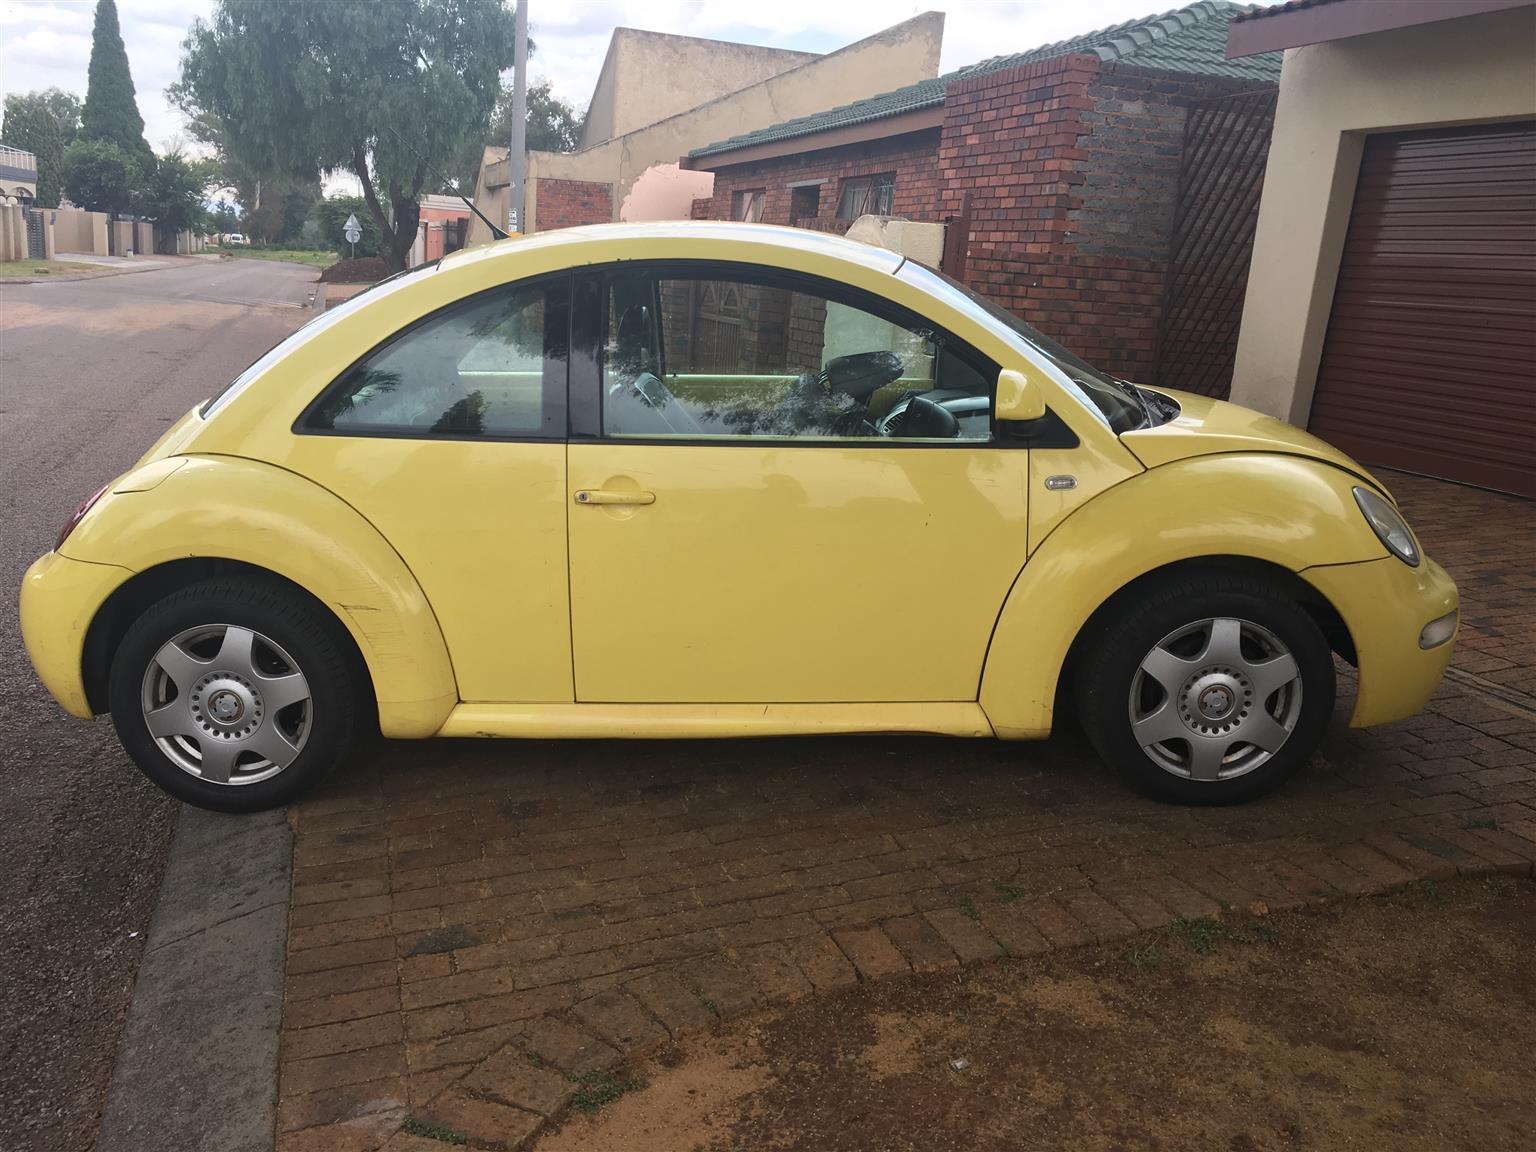 2000 vw beetle | junk mail